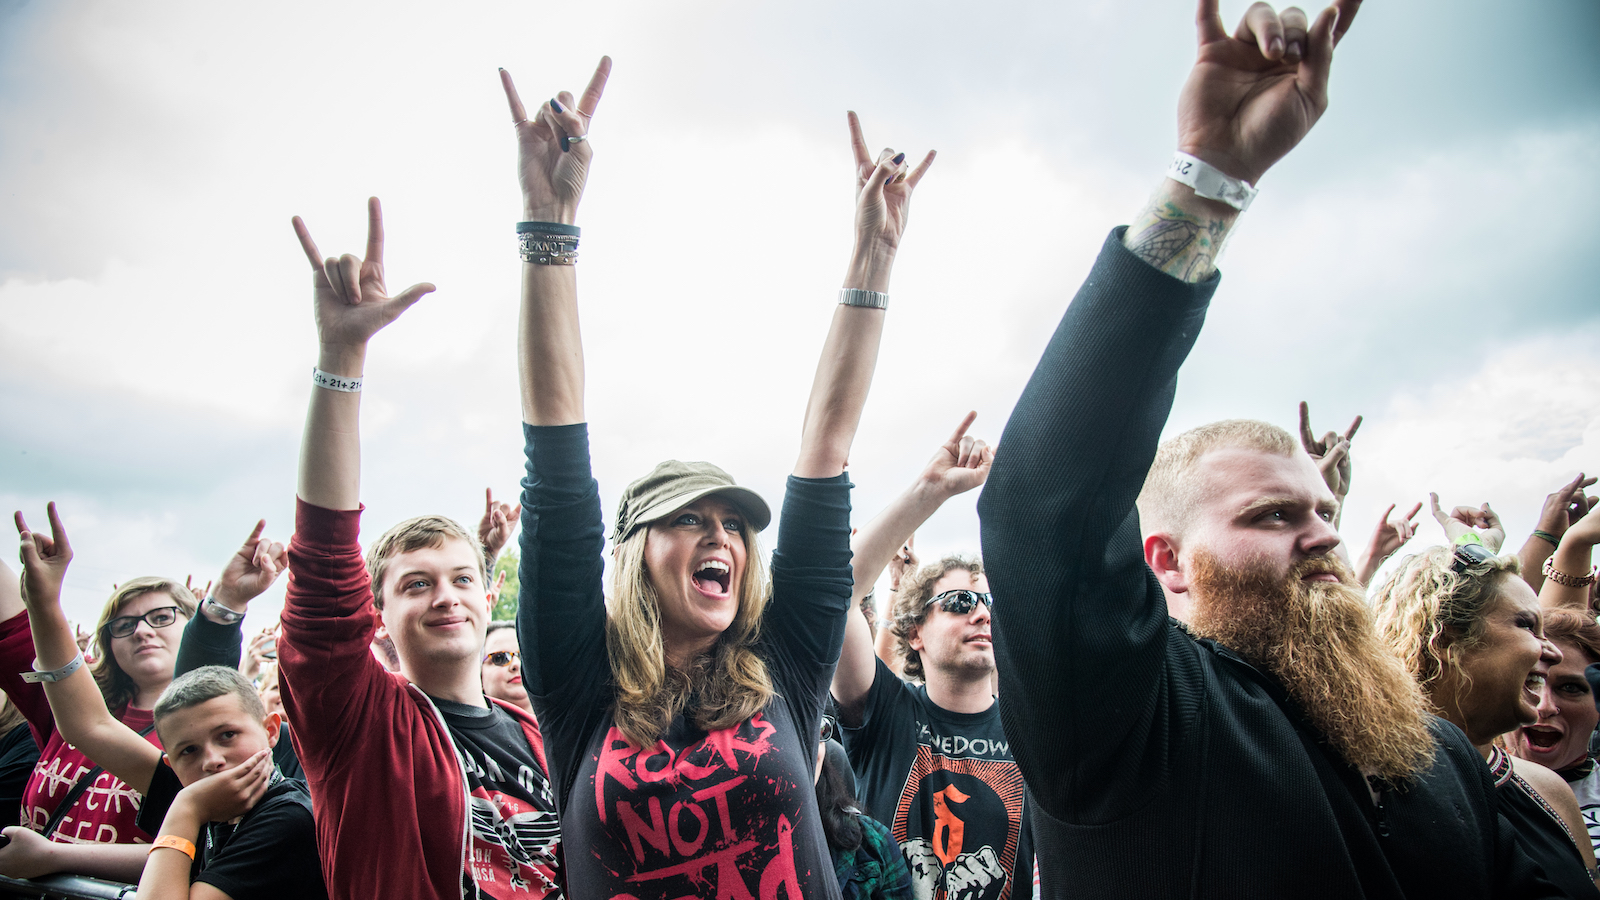 Festival goers seen during Avatar at the Louder Than Life Festival on Saturday, Oct. 1, 2016, in Louisville, Ky. (Photo by Amy Harris/Invision/AP)